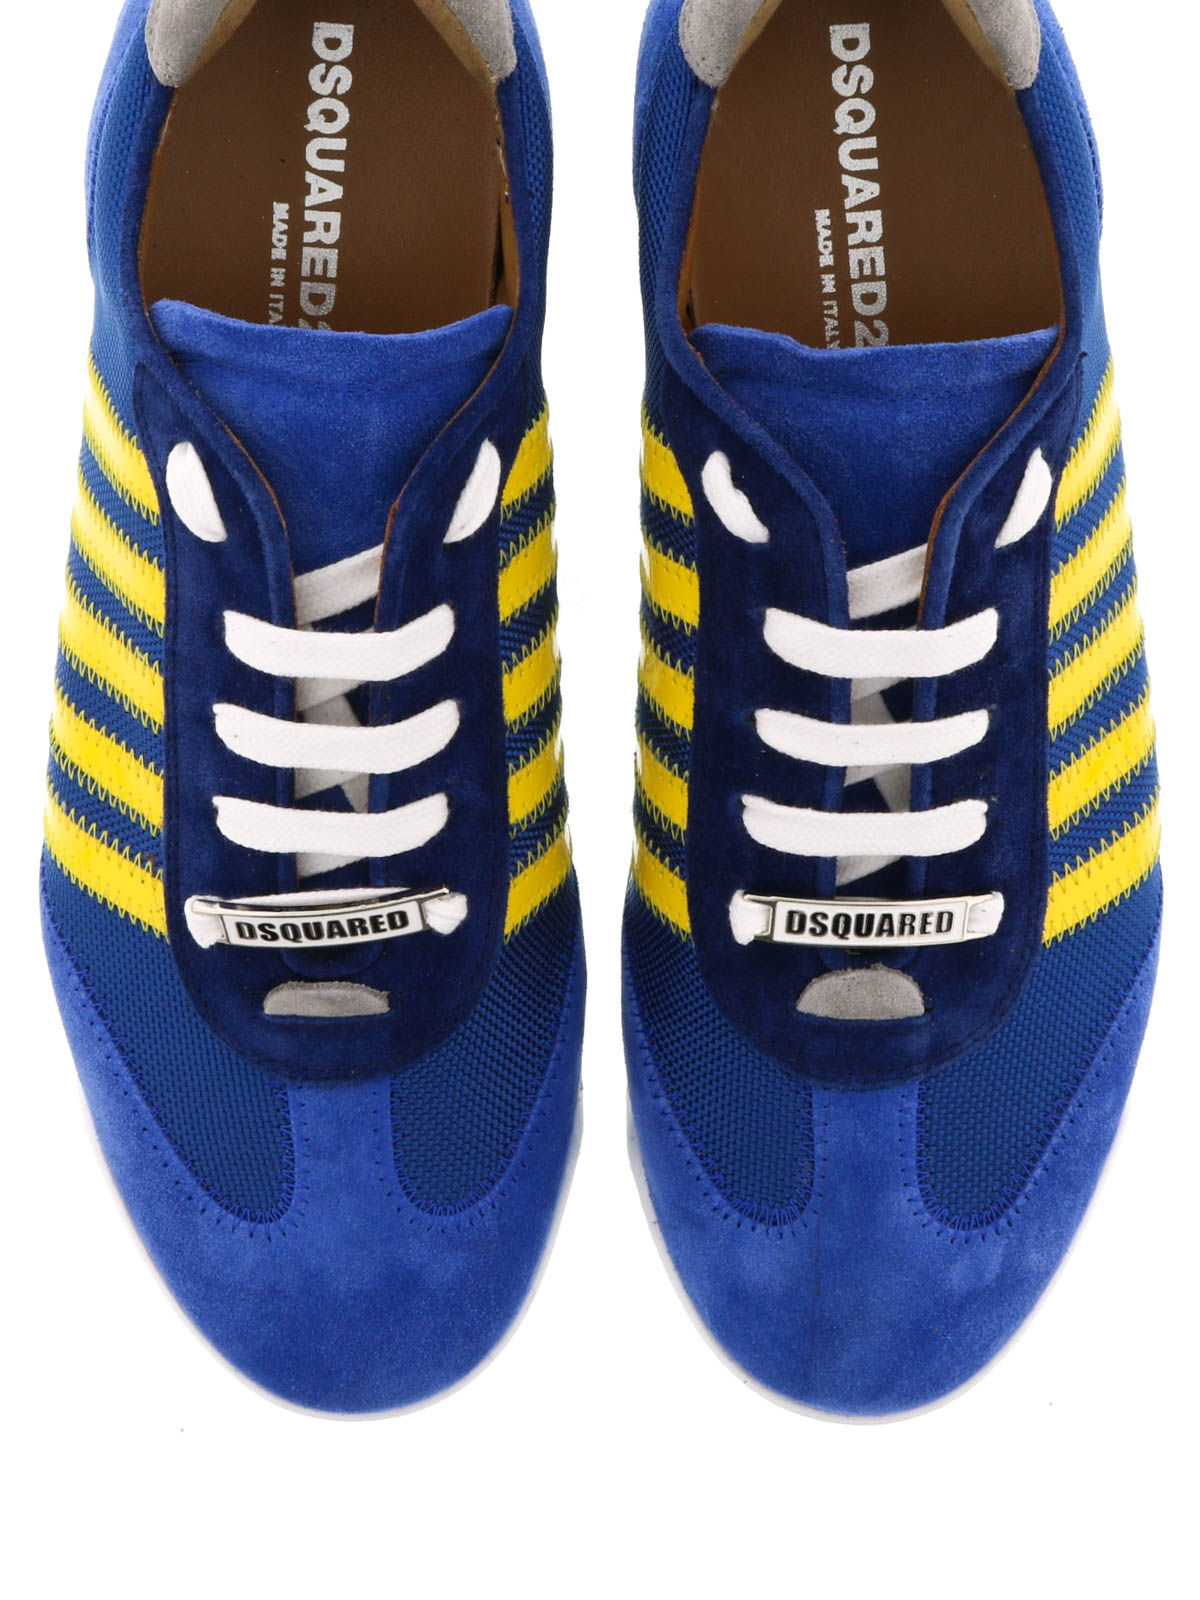 Trainers Dsquared2New Runner sneakersSN419839M226iKRIXcom